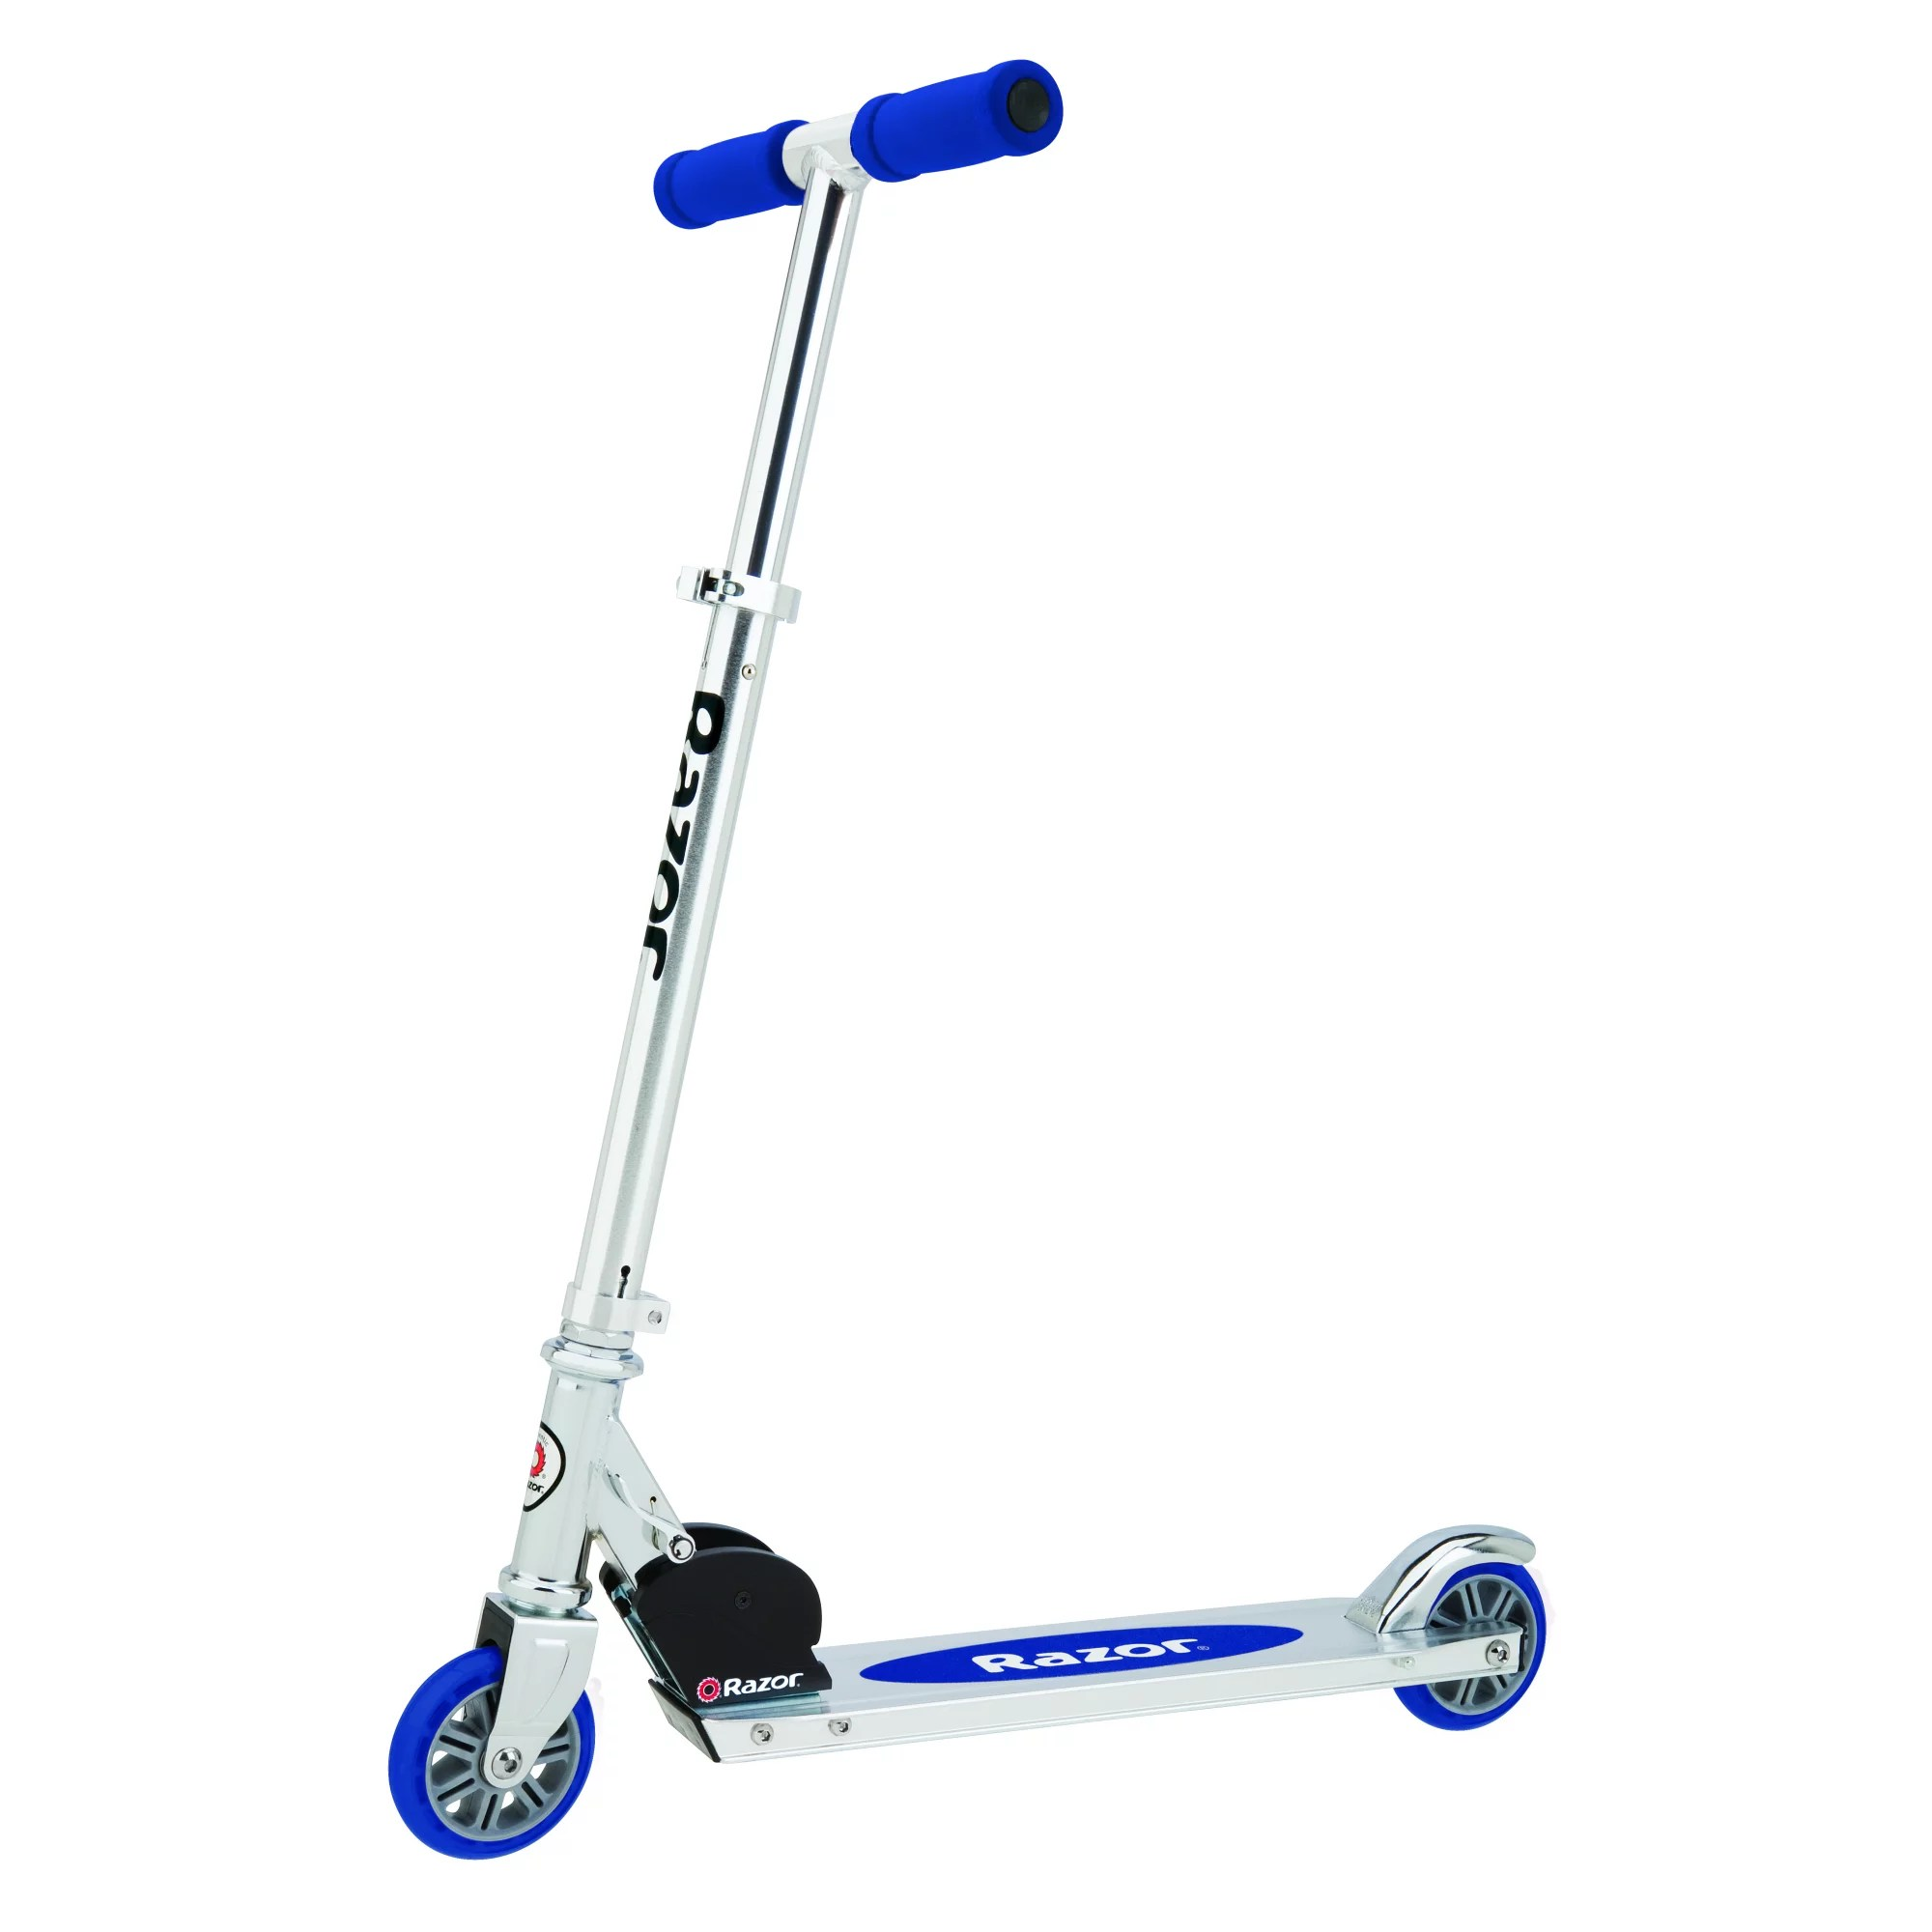 Razor Authentic A Kick Scooter – Ages 5+ and Riders up to 143 Pounds